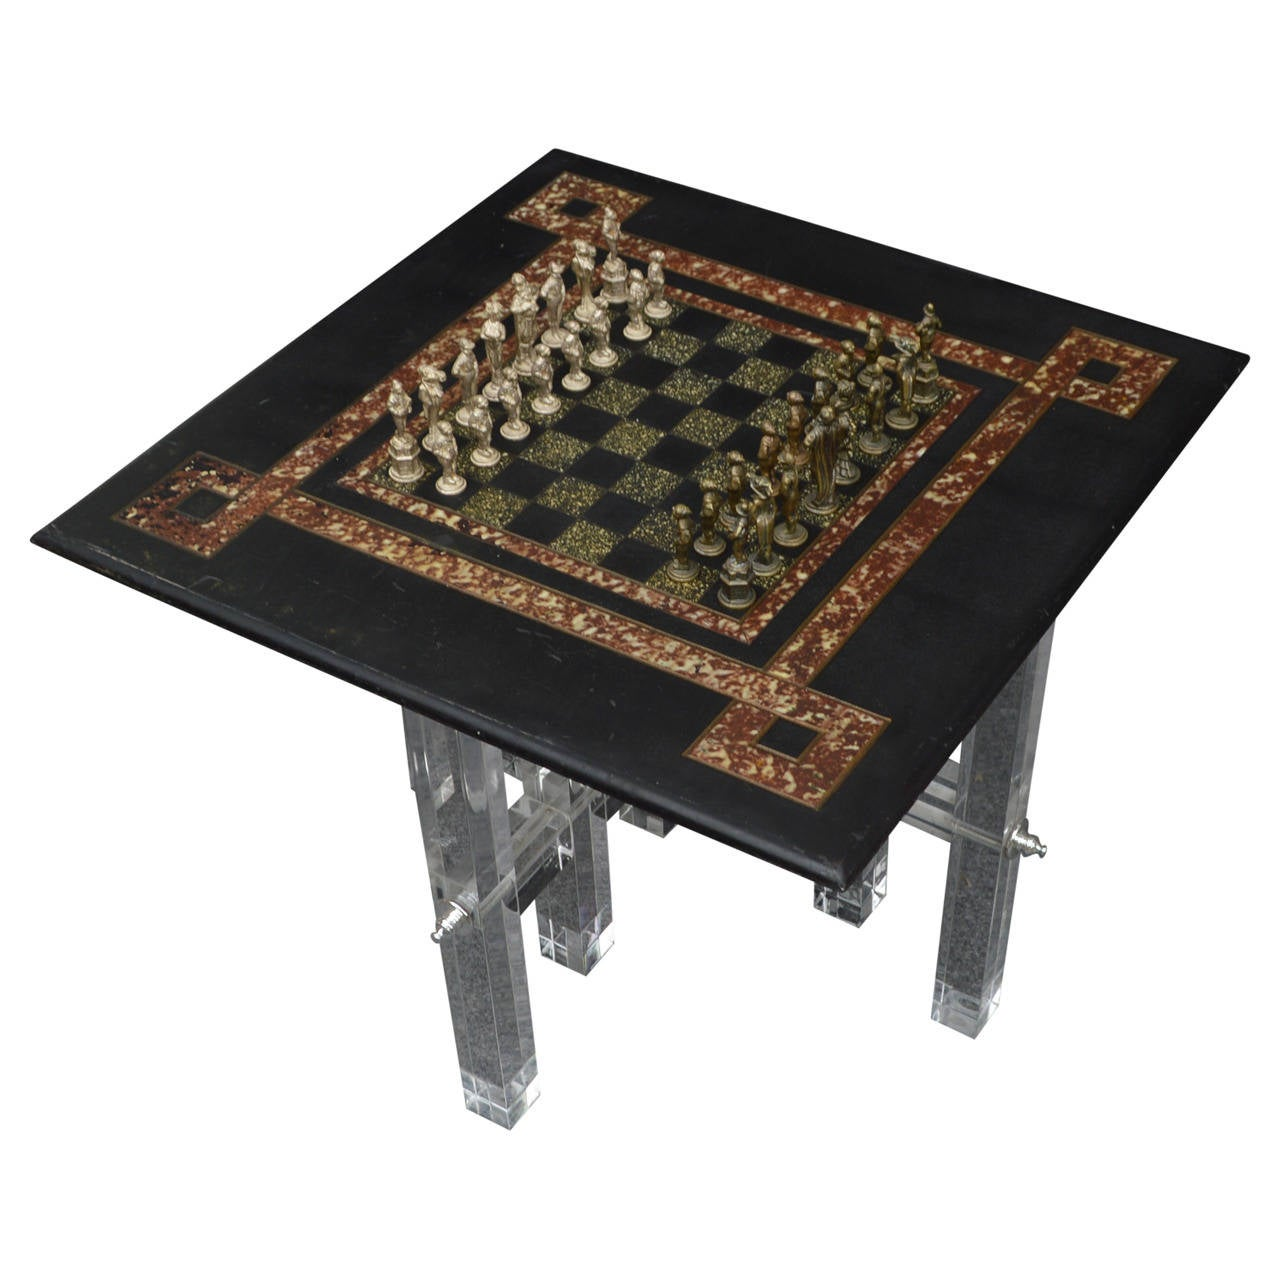 Small chess board side table for sale at 1stdibs for Small tables for sale